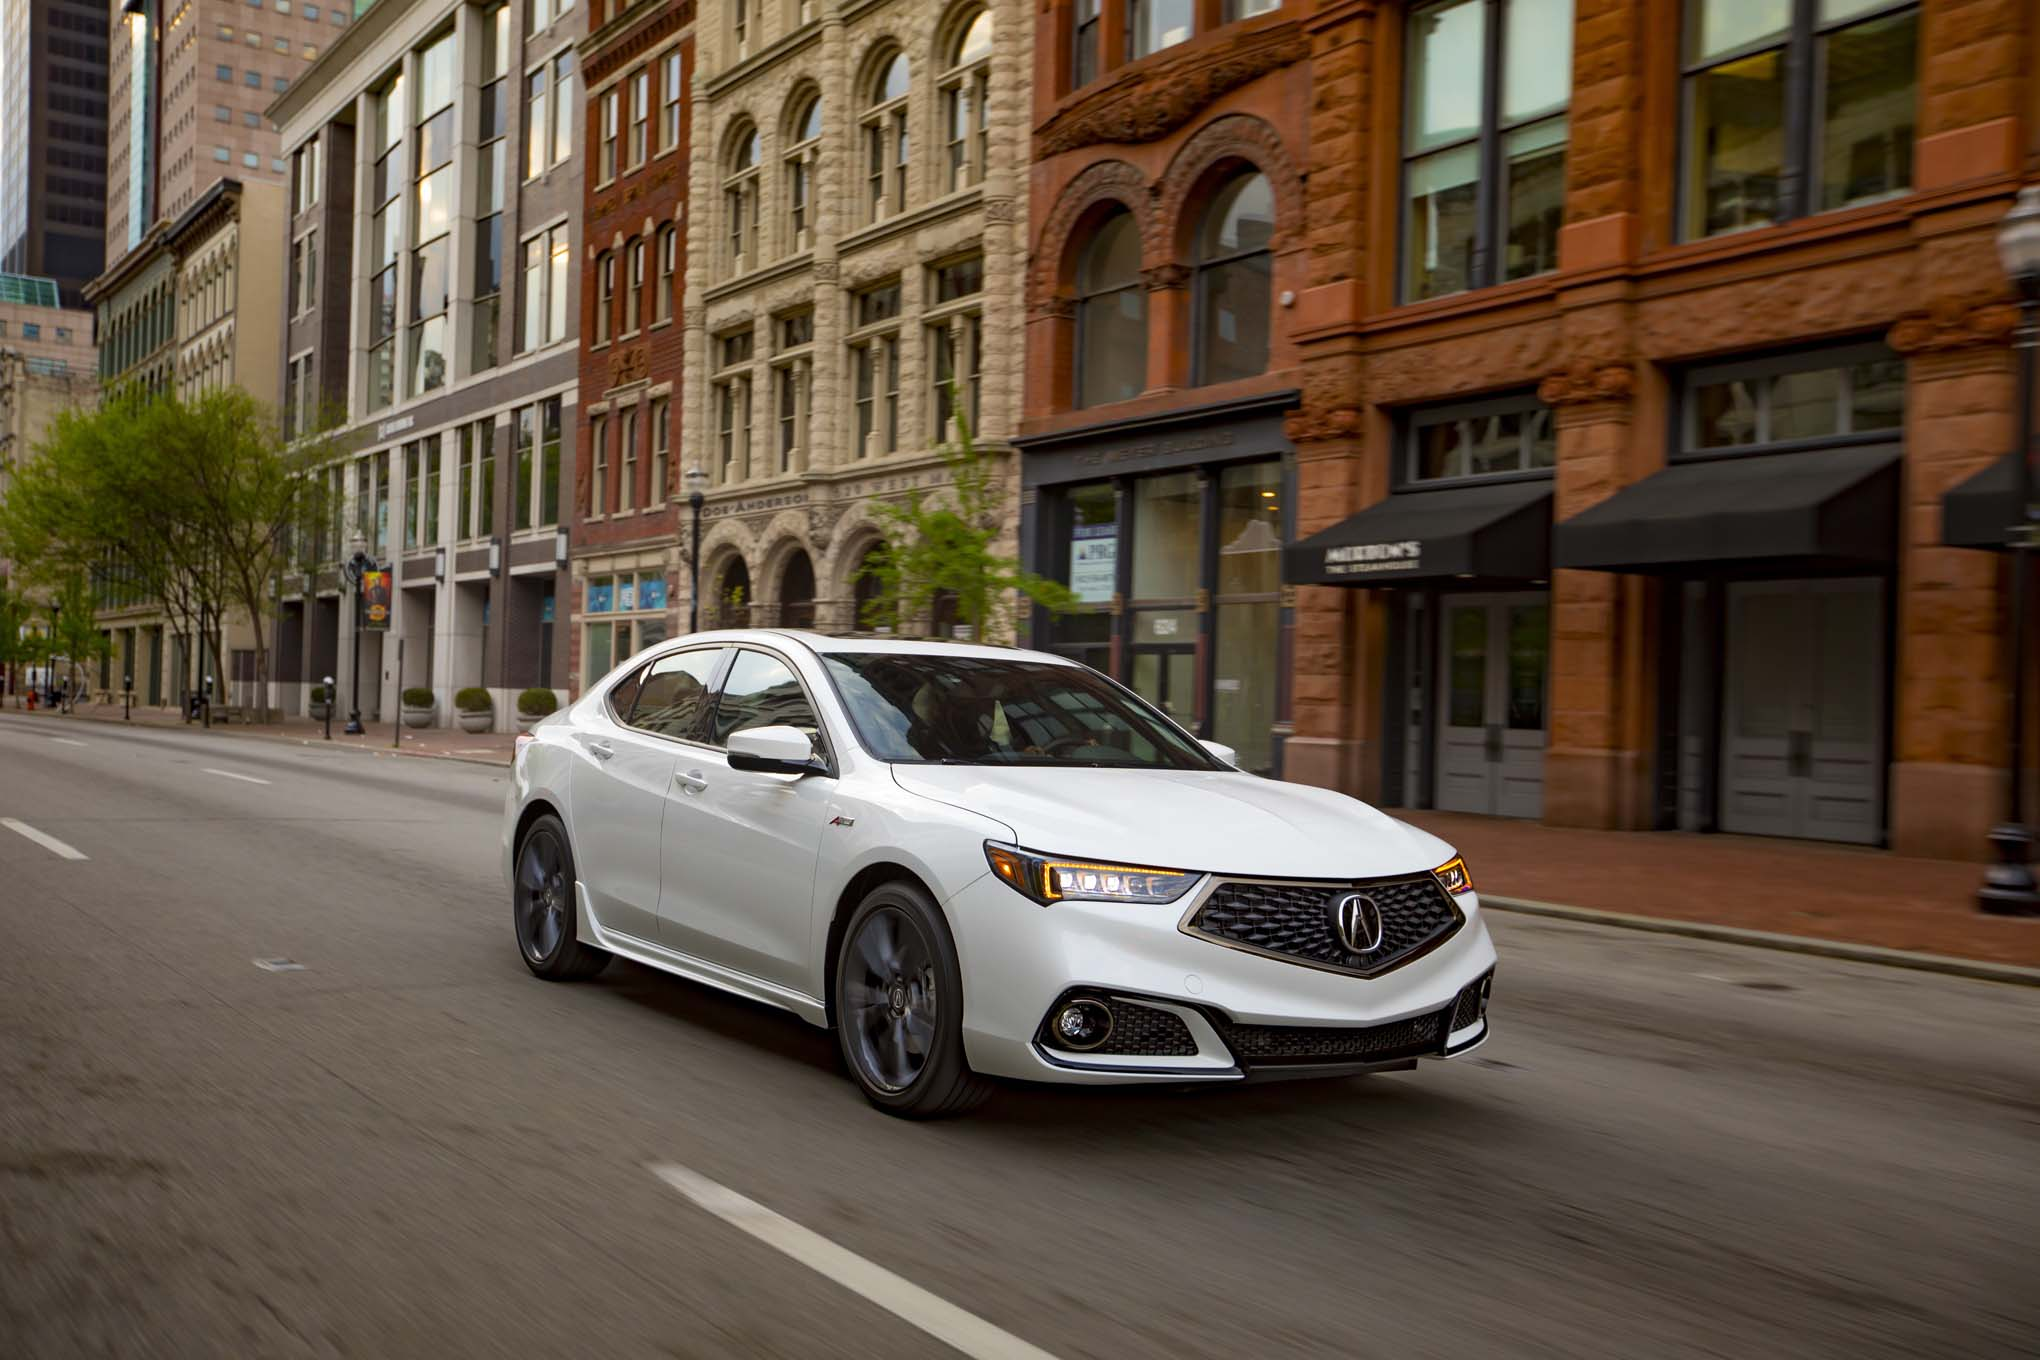 Acura TLX SHAWD ASpec First Drive Review Automobile Magazine - 2018 tl acura